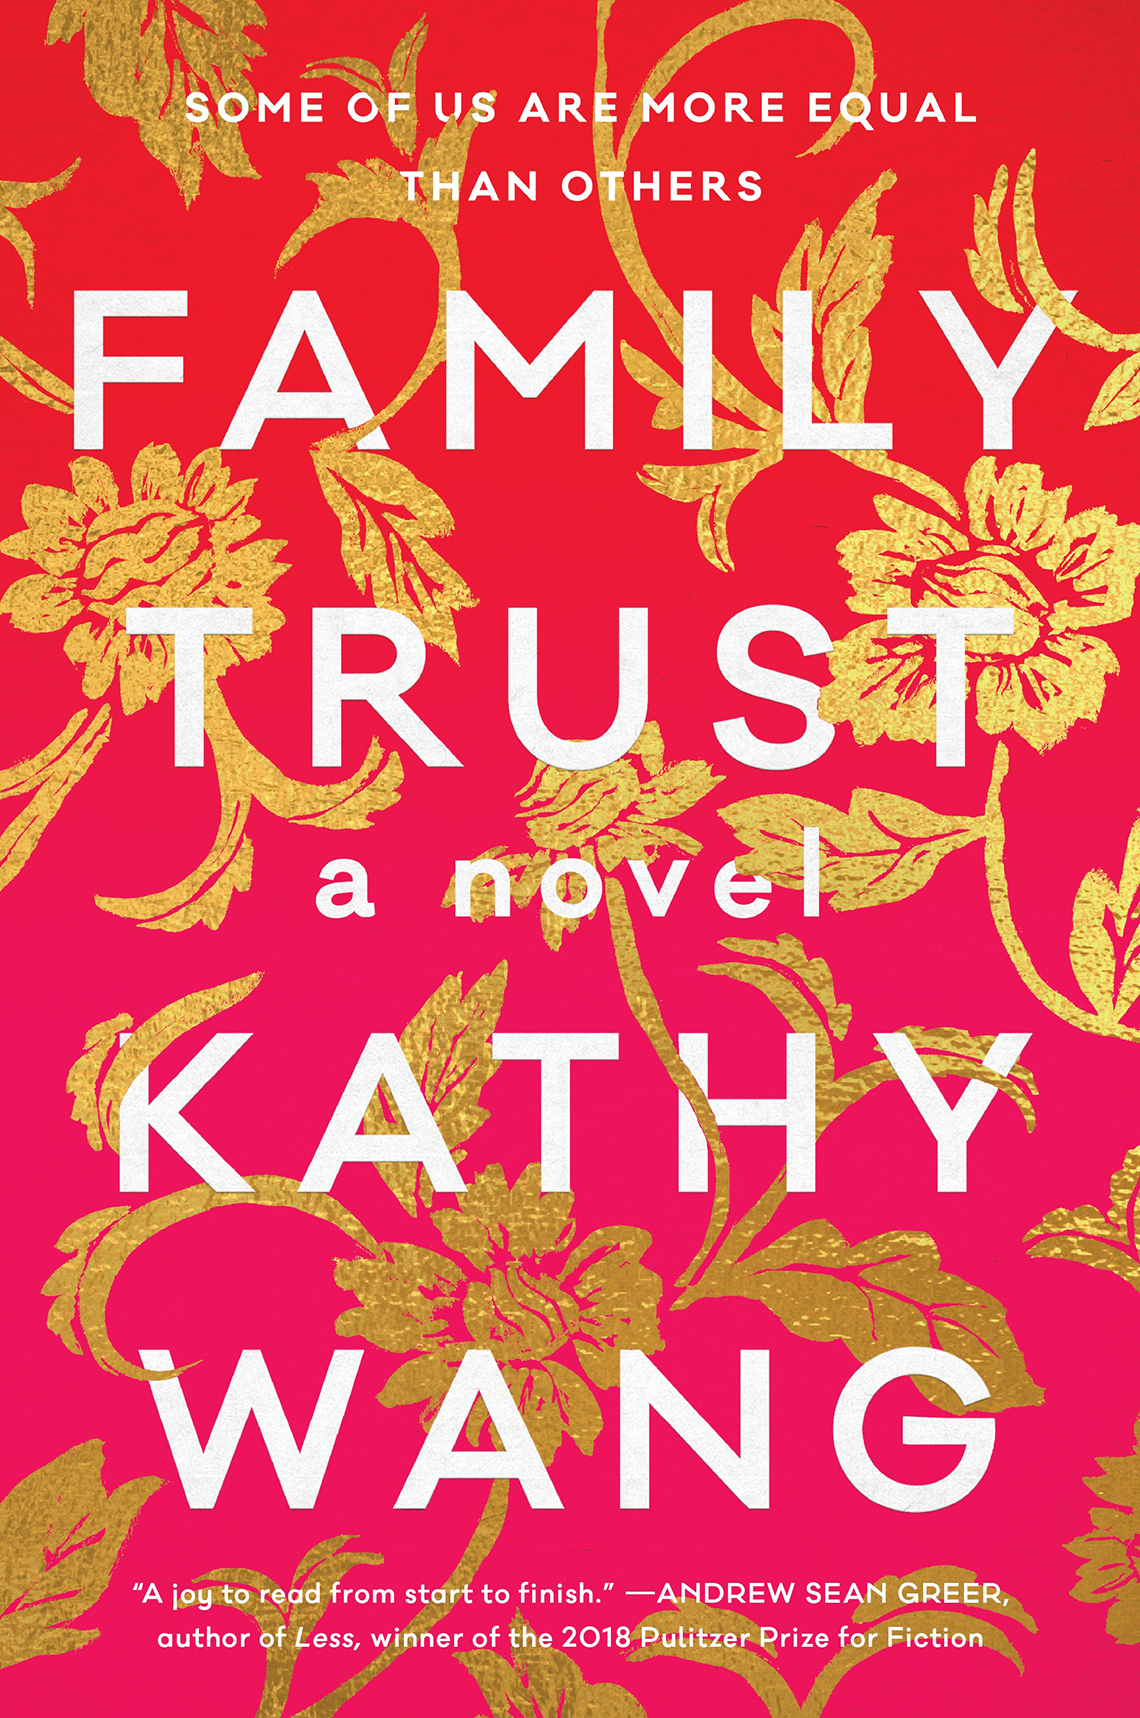 """Book cover reads, """"Some of us are more equal than others, Family Trust, a novel, Kathy Wang"""